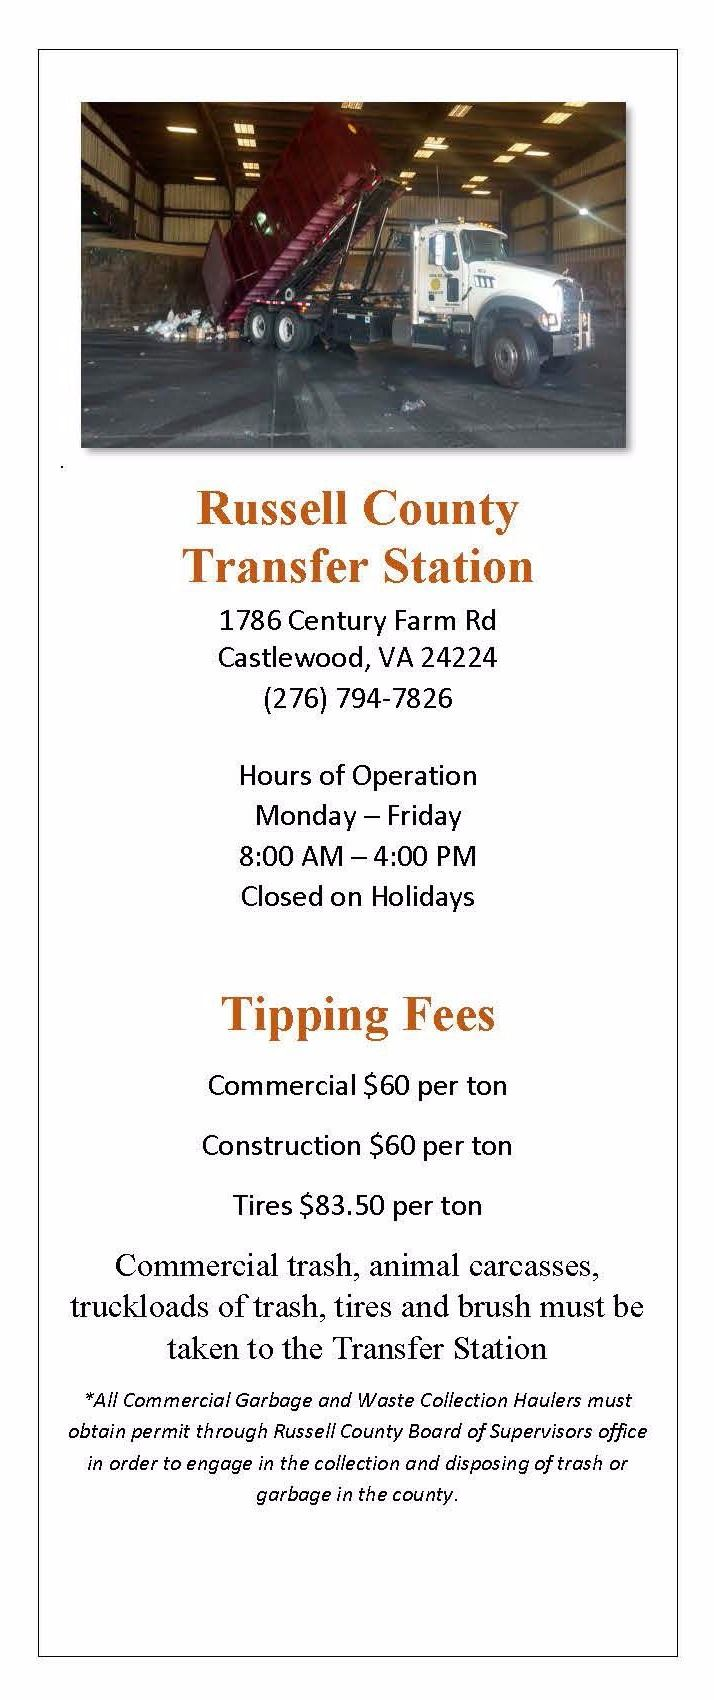 Russell County Transfer Station Information